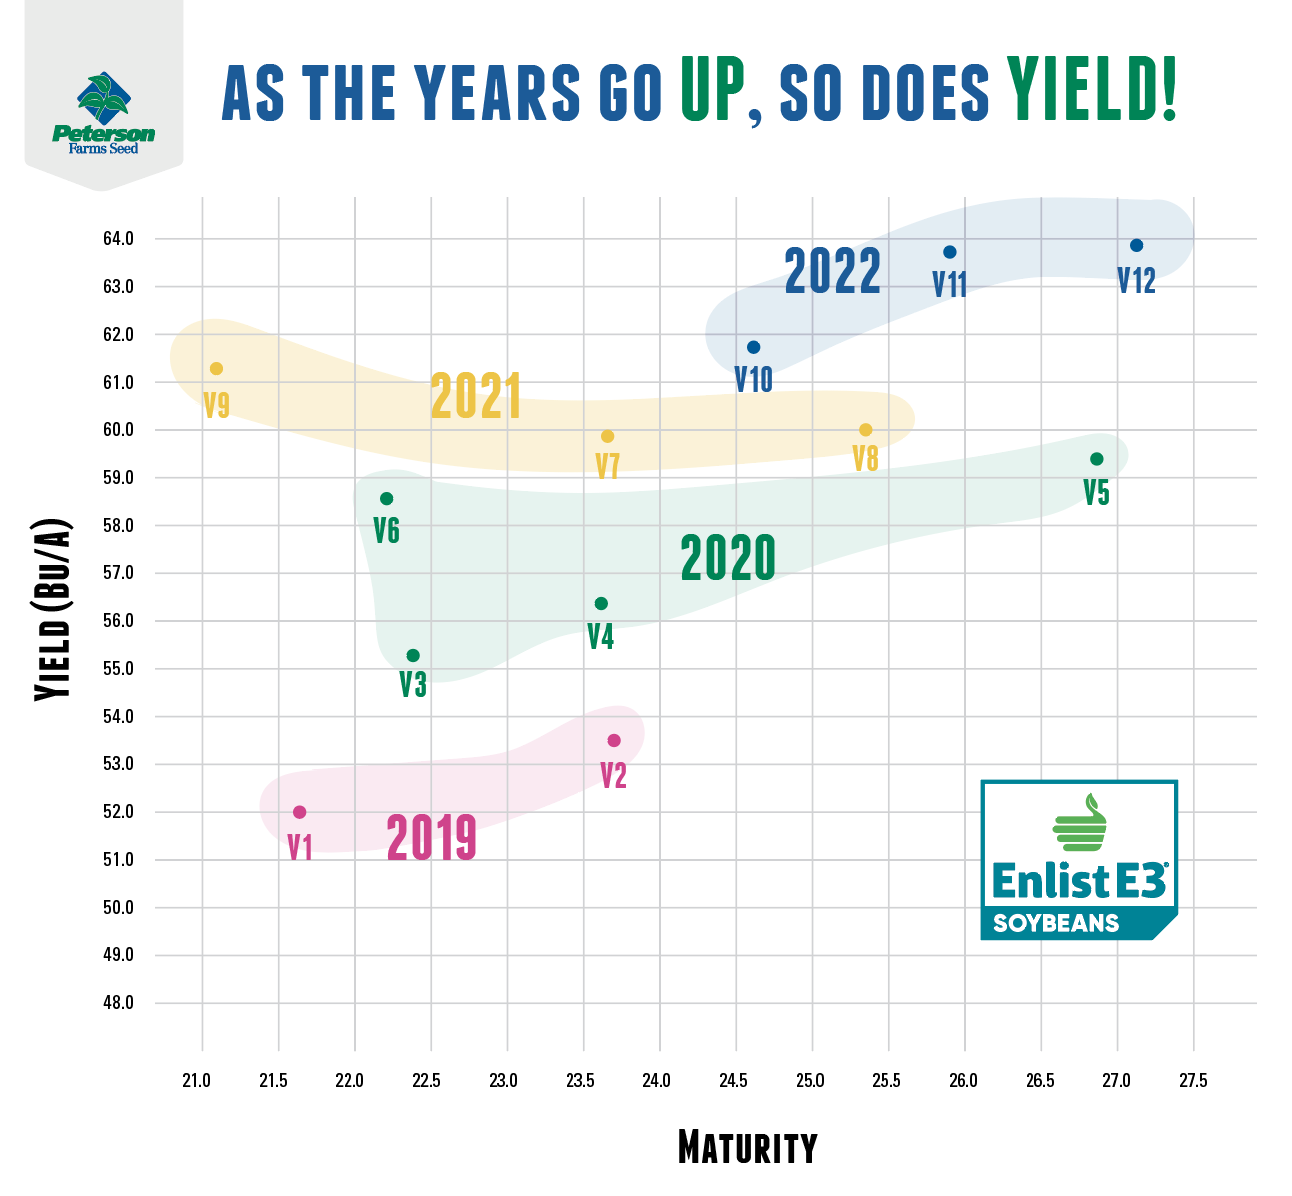 soybean breeding chart shows yield growth over the years